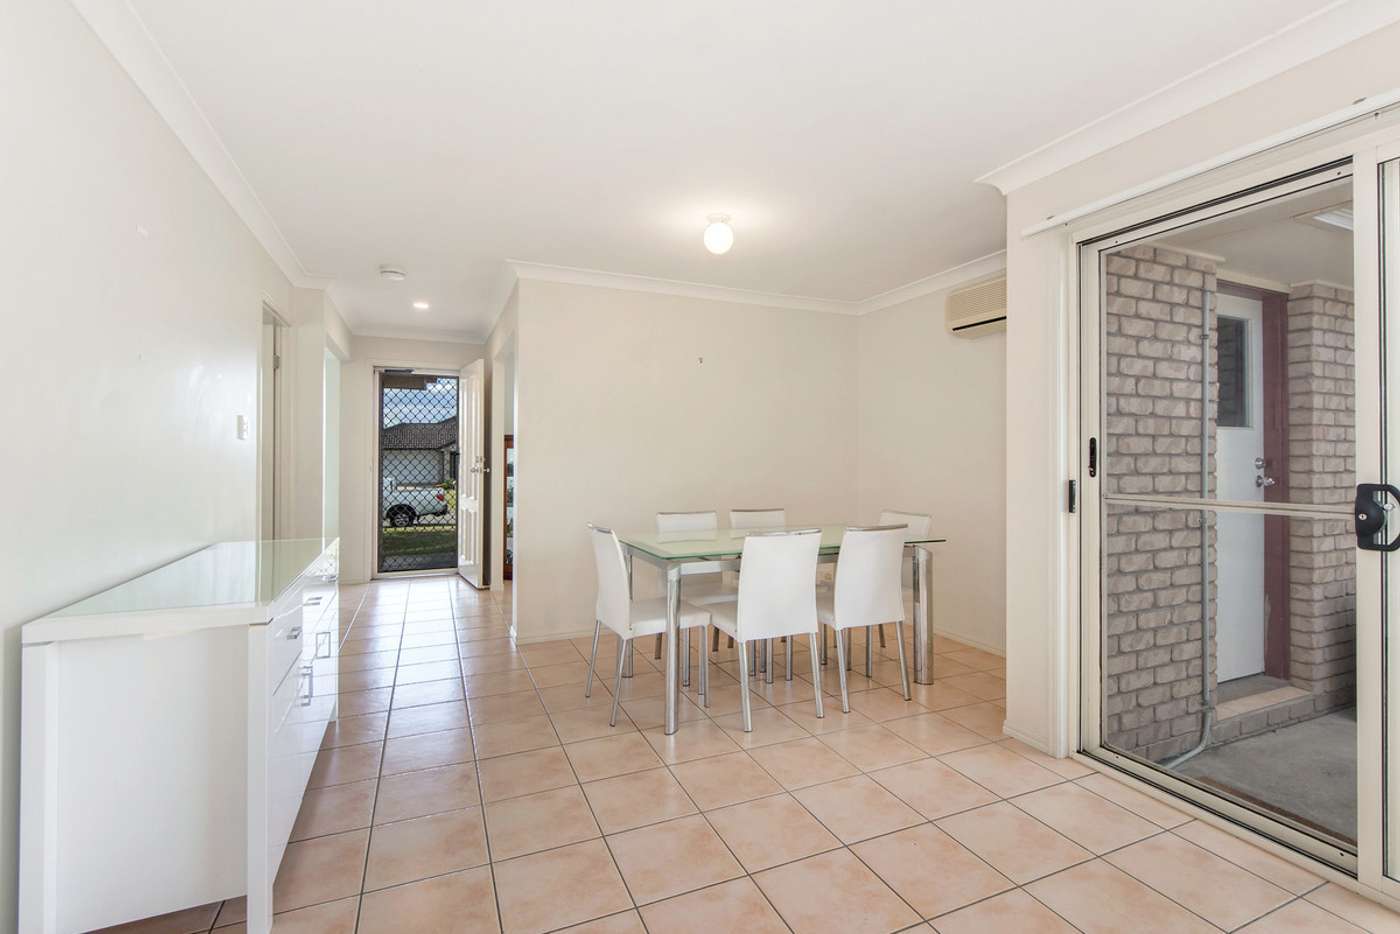 Fifth view of Homely house listing, 11 Kristy Court, Raceview QLD 4305